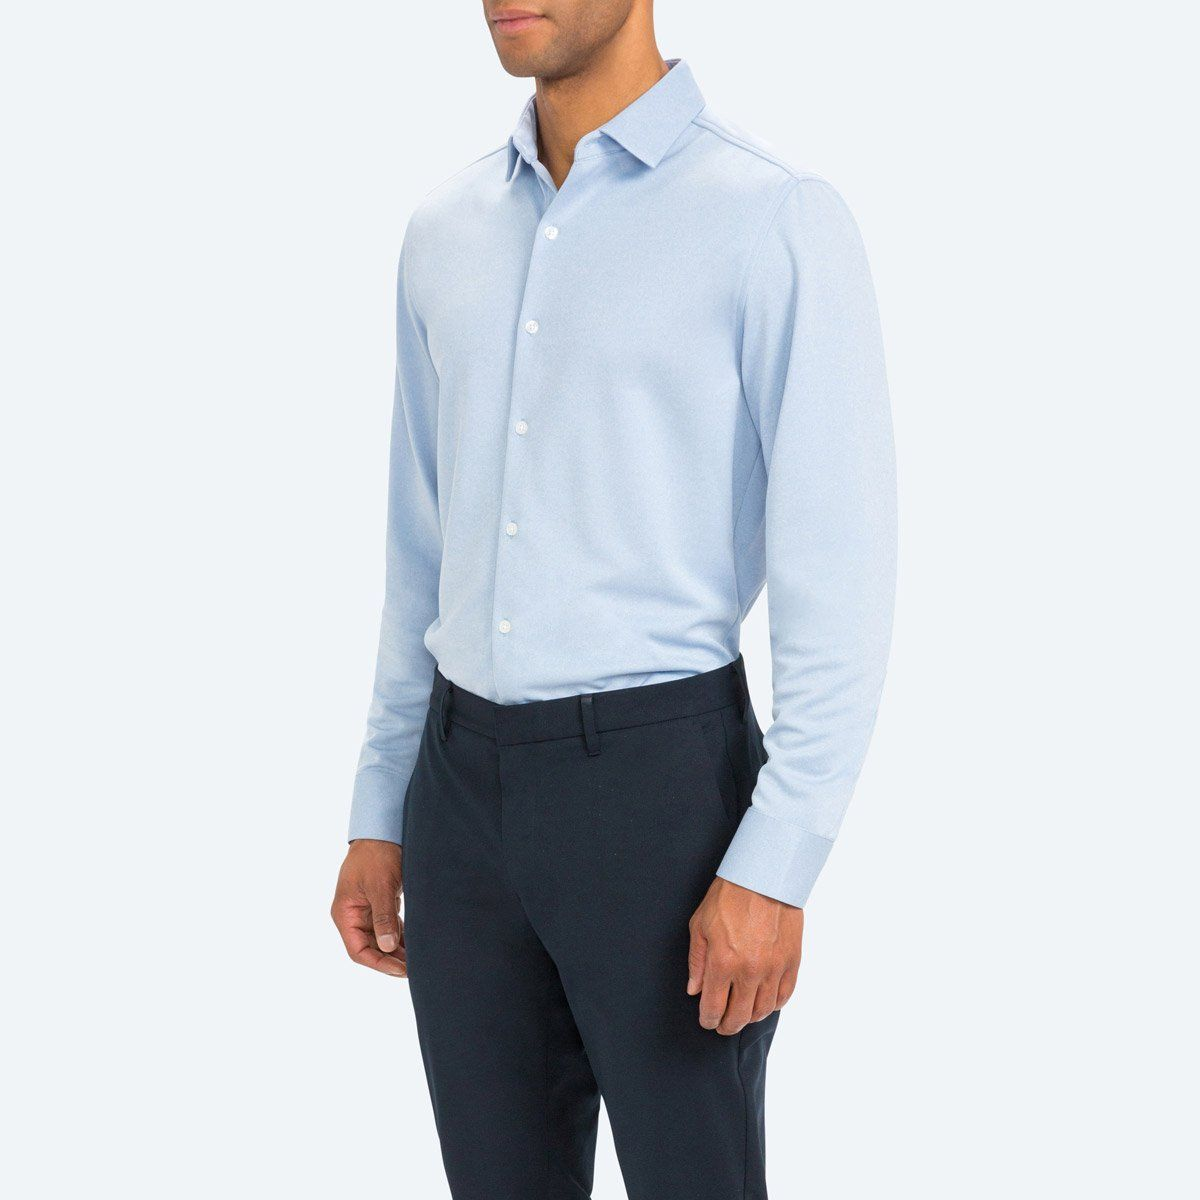 03ca3bc69e Men's Performance Professional Dress Shirt | Blue Heather | Ministry of  Supply